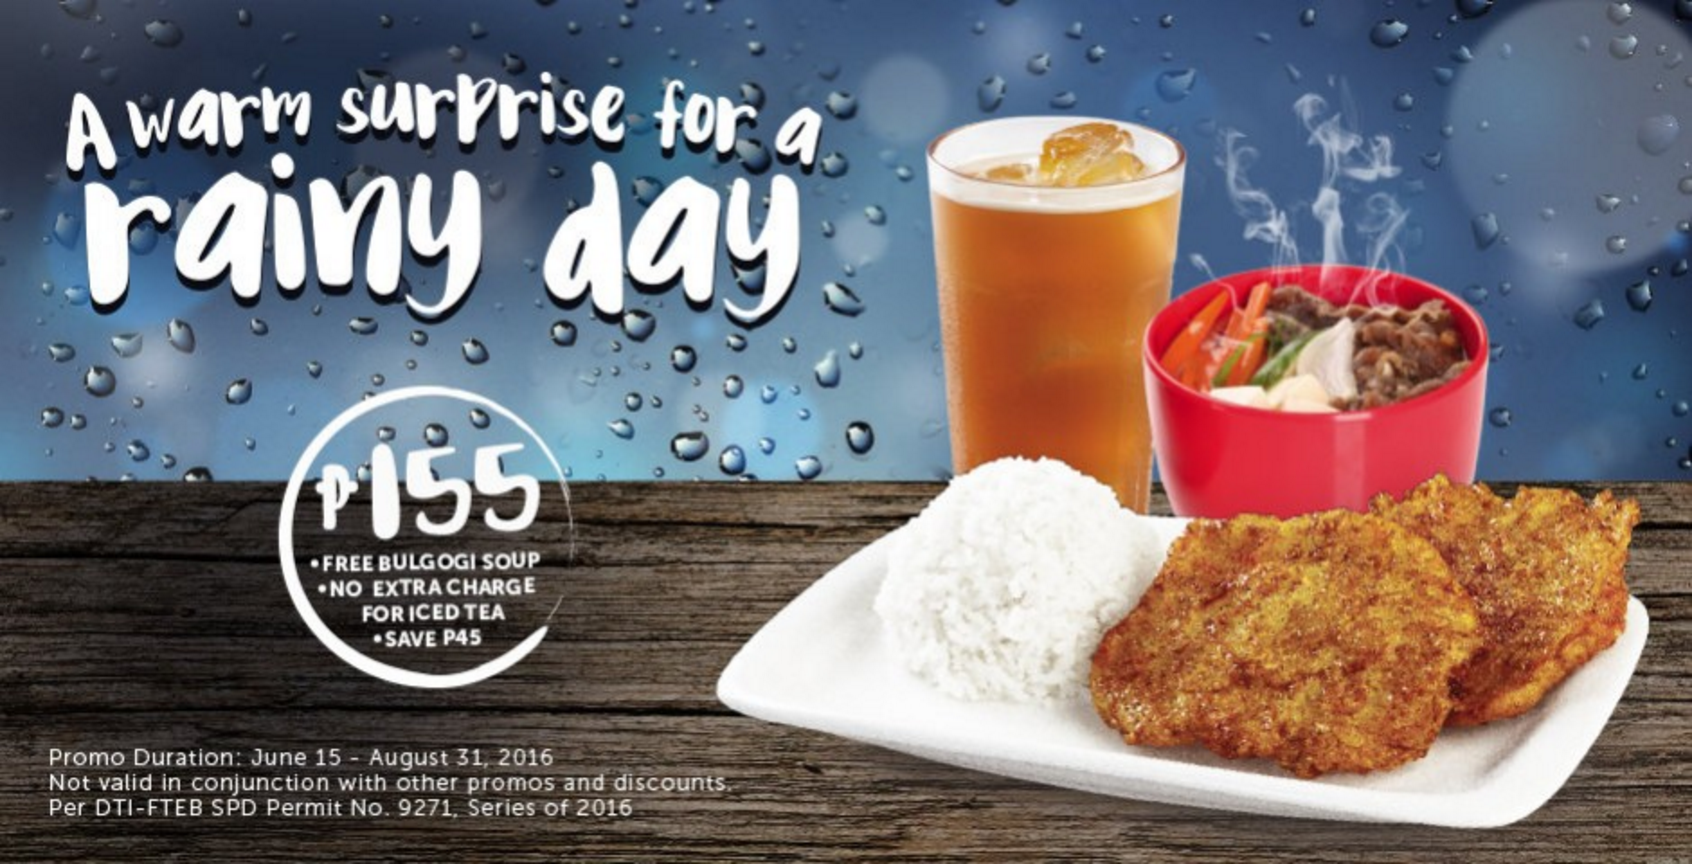 On Advertising: BonChonPH's Rainy Days Ads